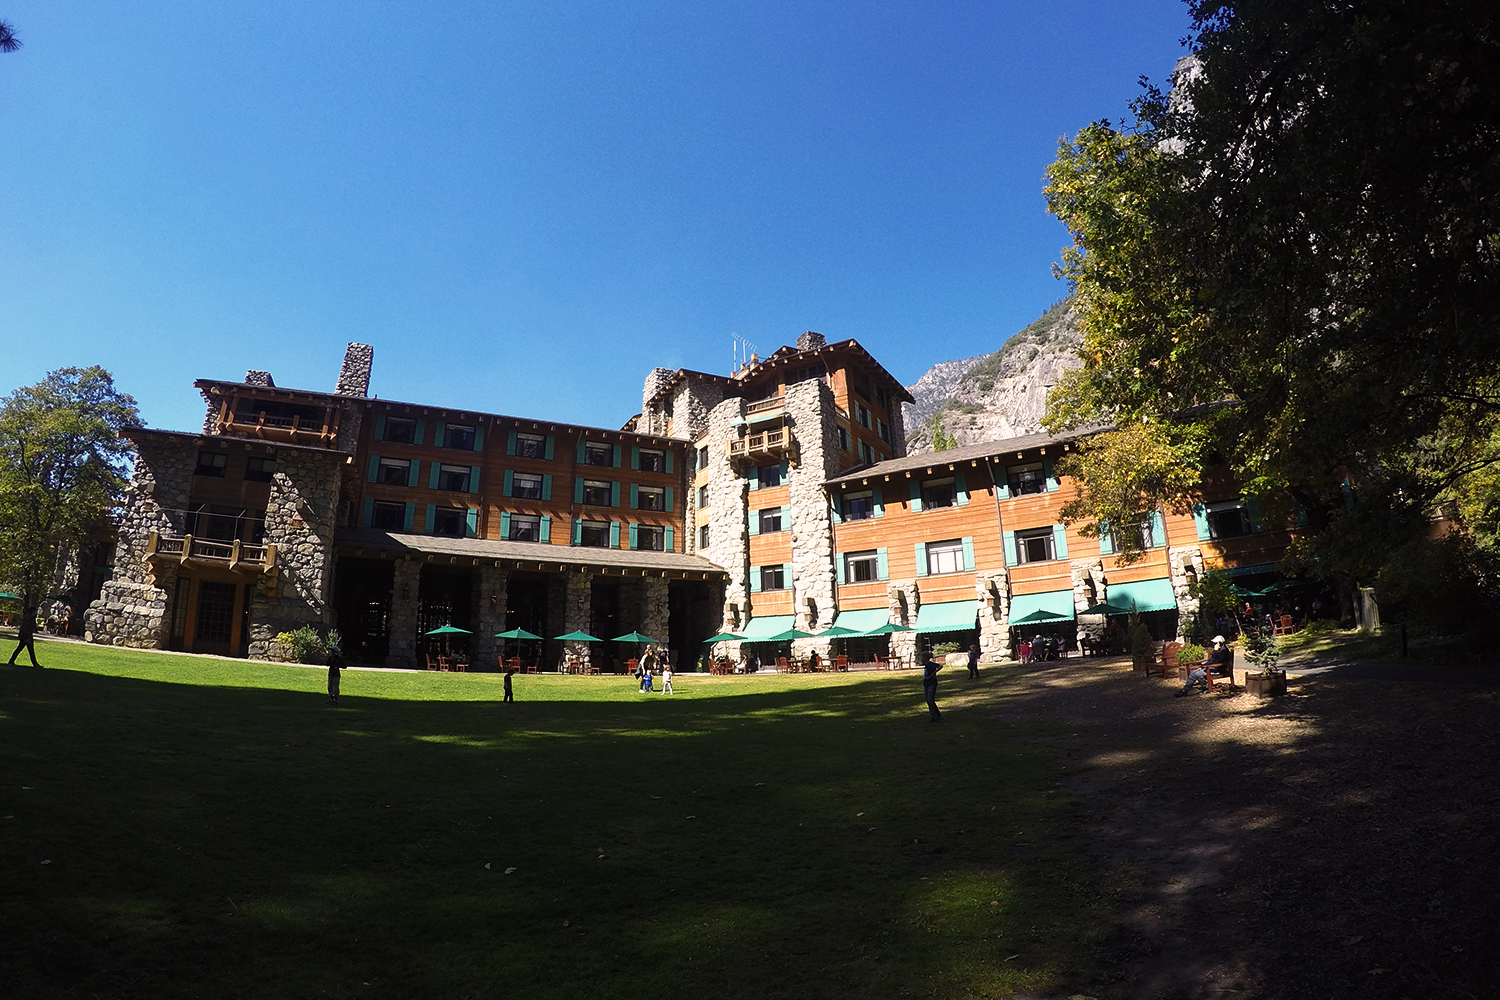 Paranormal activity in haunted ahwahnee hotel yosemite for Design hotel yosemite